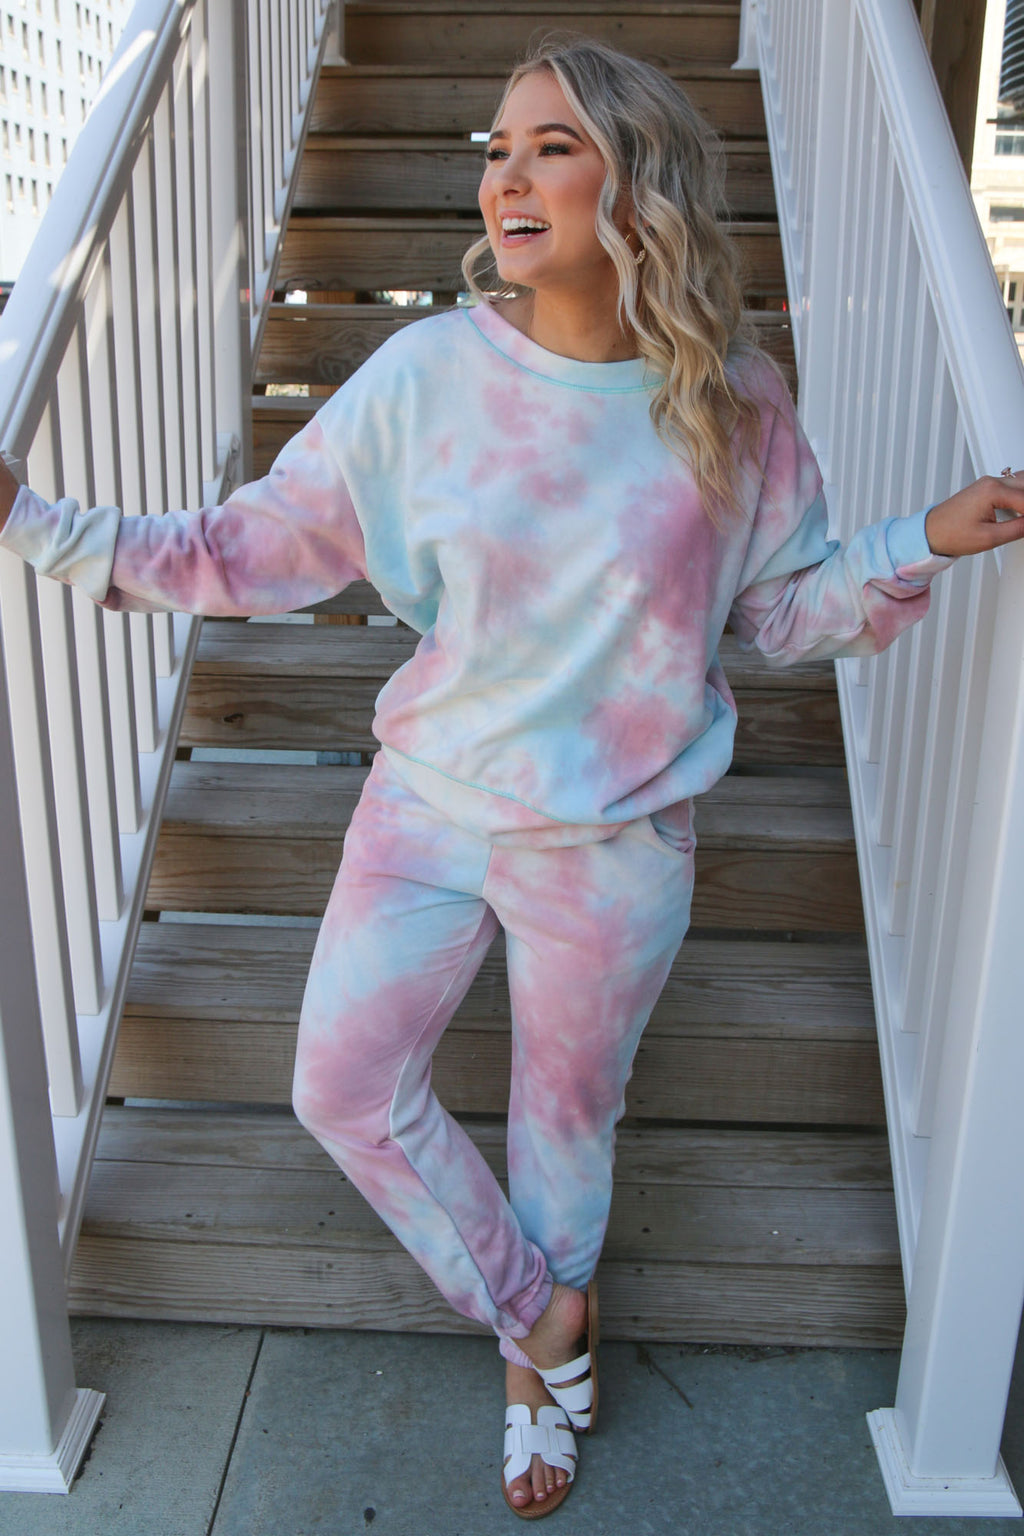 The Love of Tie Dye Set